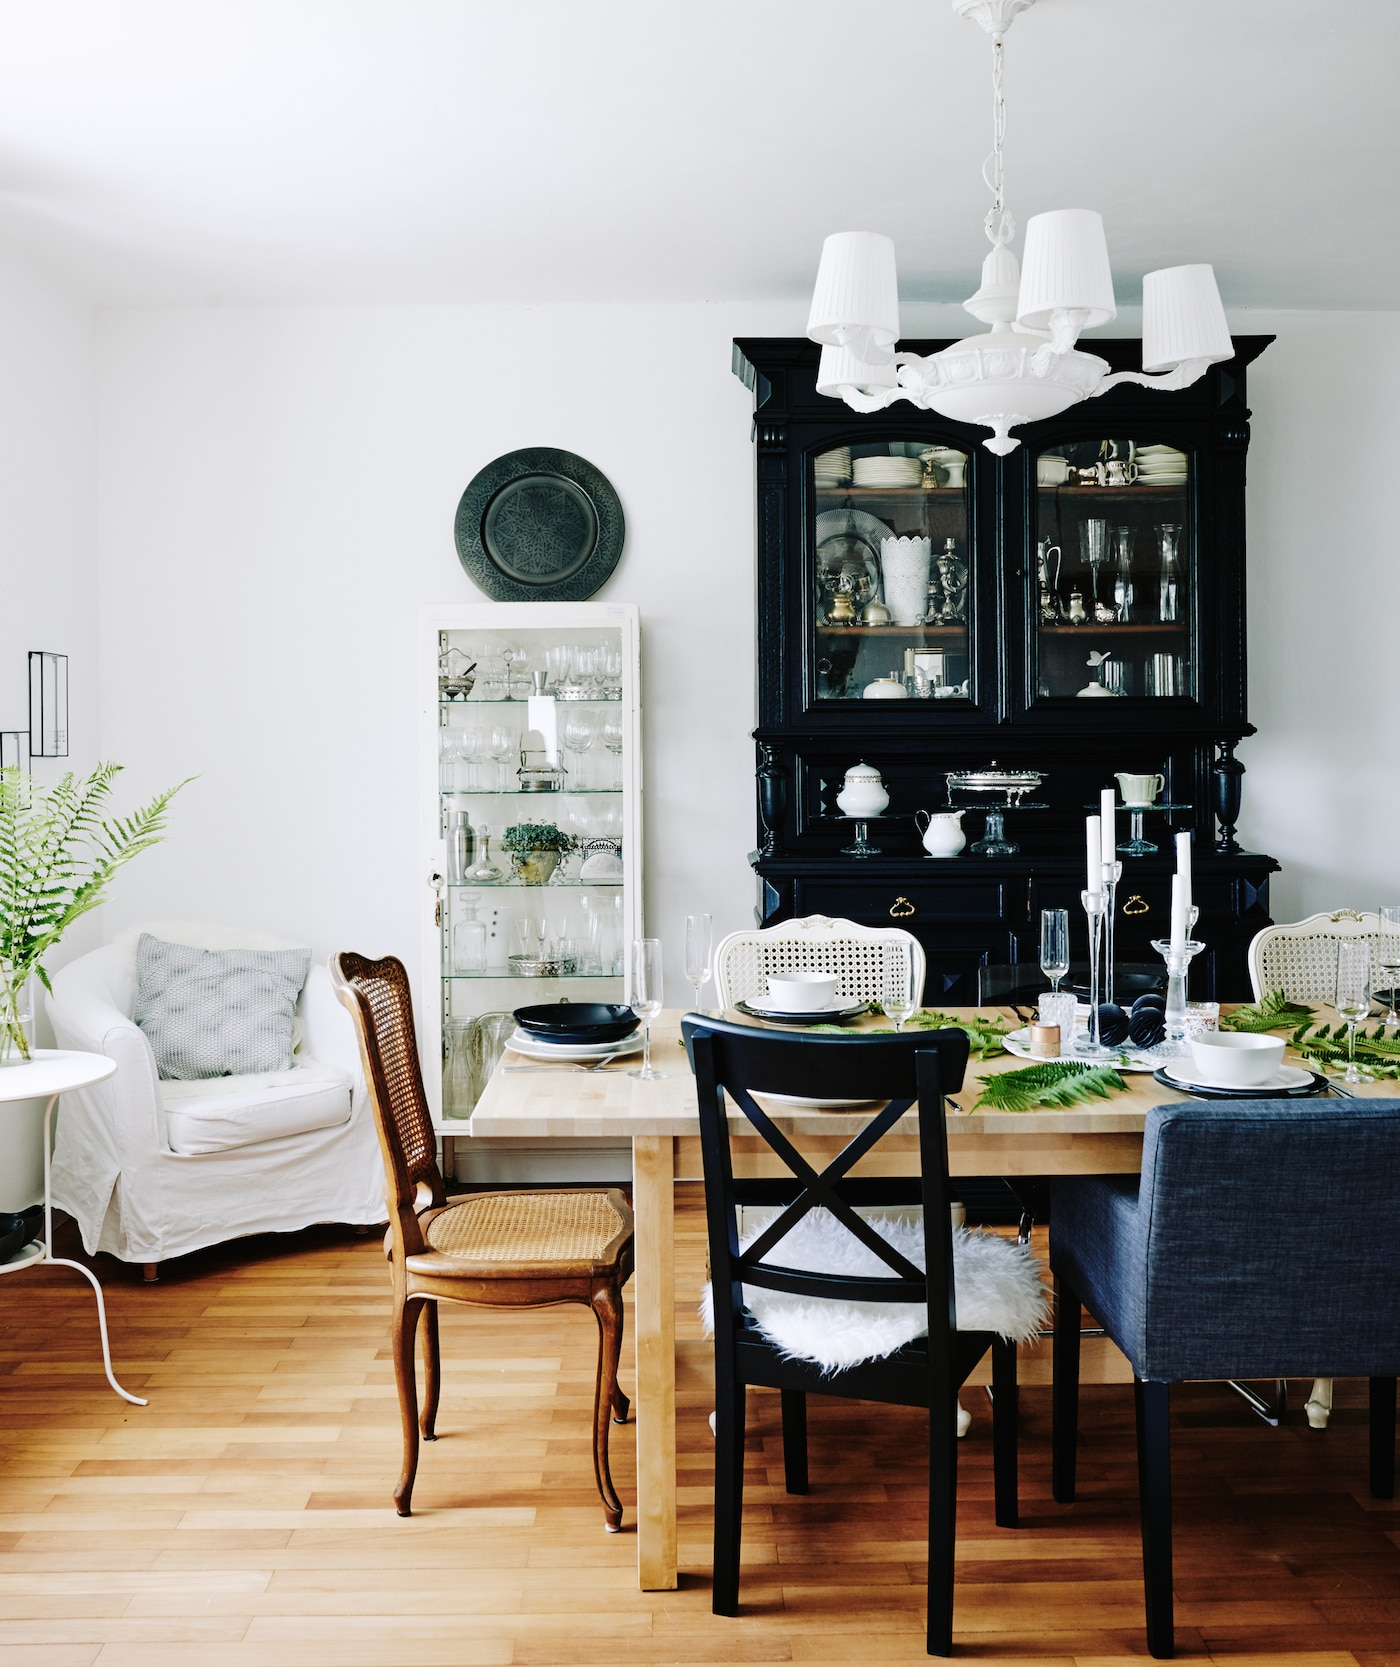 Mona's relaxed yet inviting dining room with a seasonal central table setting SEO-friendly name: A relaxed dining room with a beautiful seasonal centrepiece.